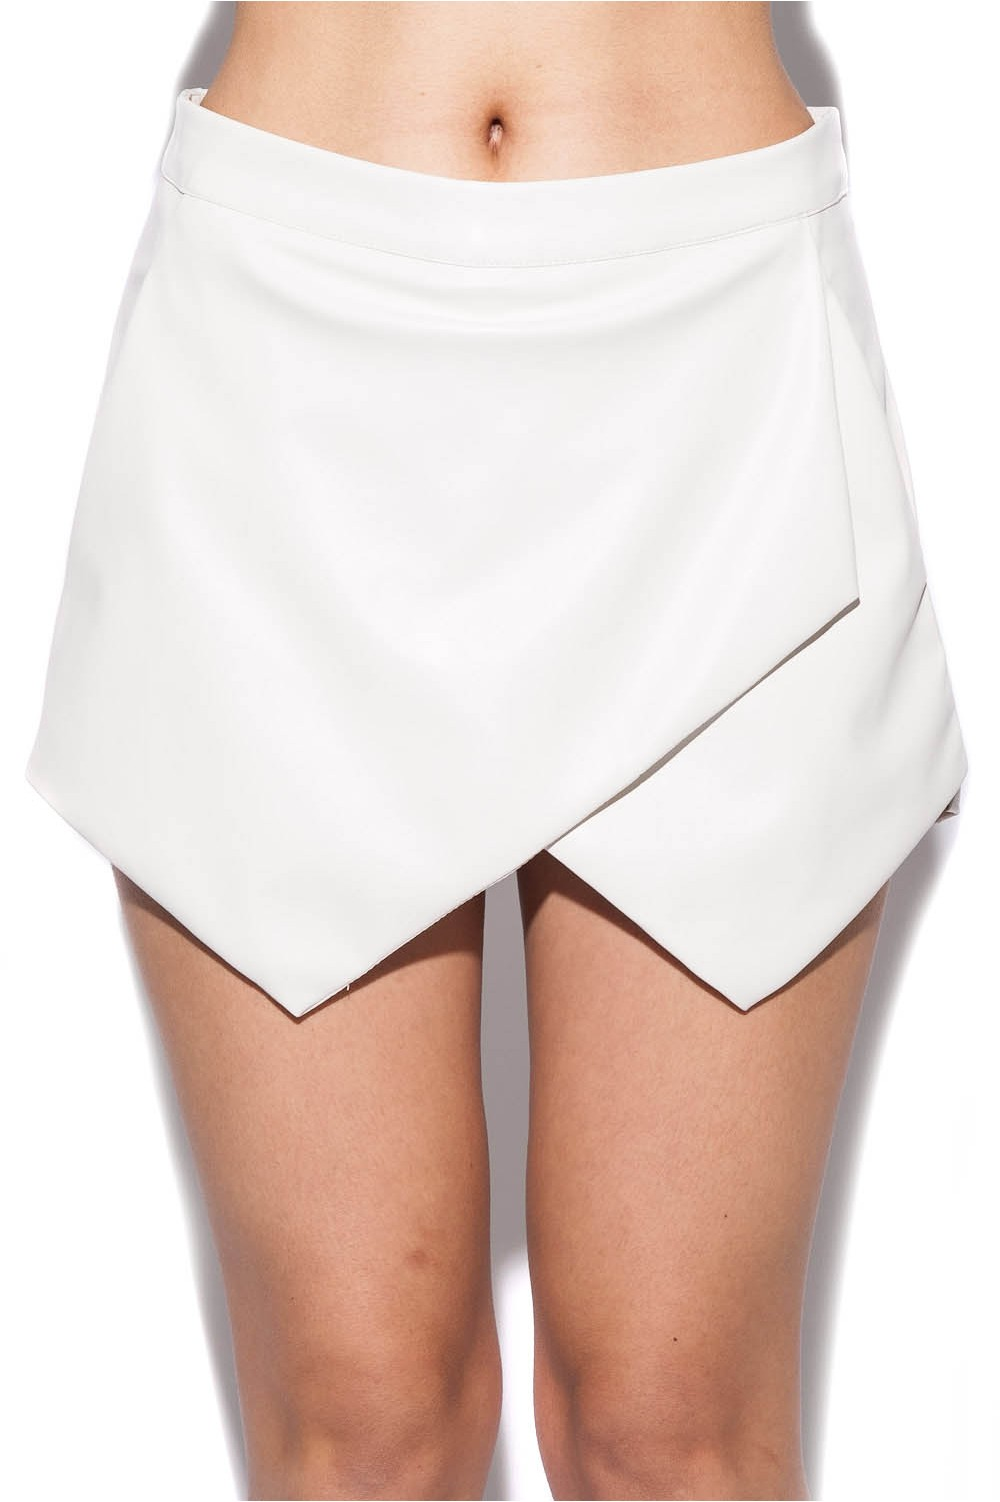 Find great deals on eBay for white skorts. Shop with confidence.